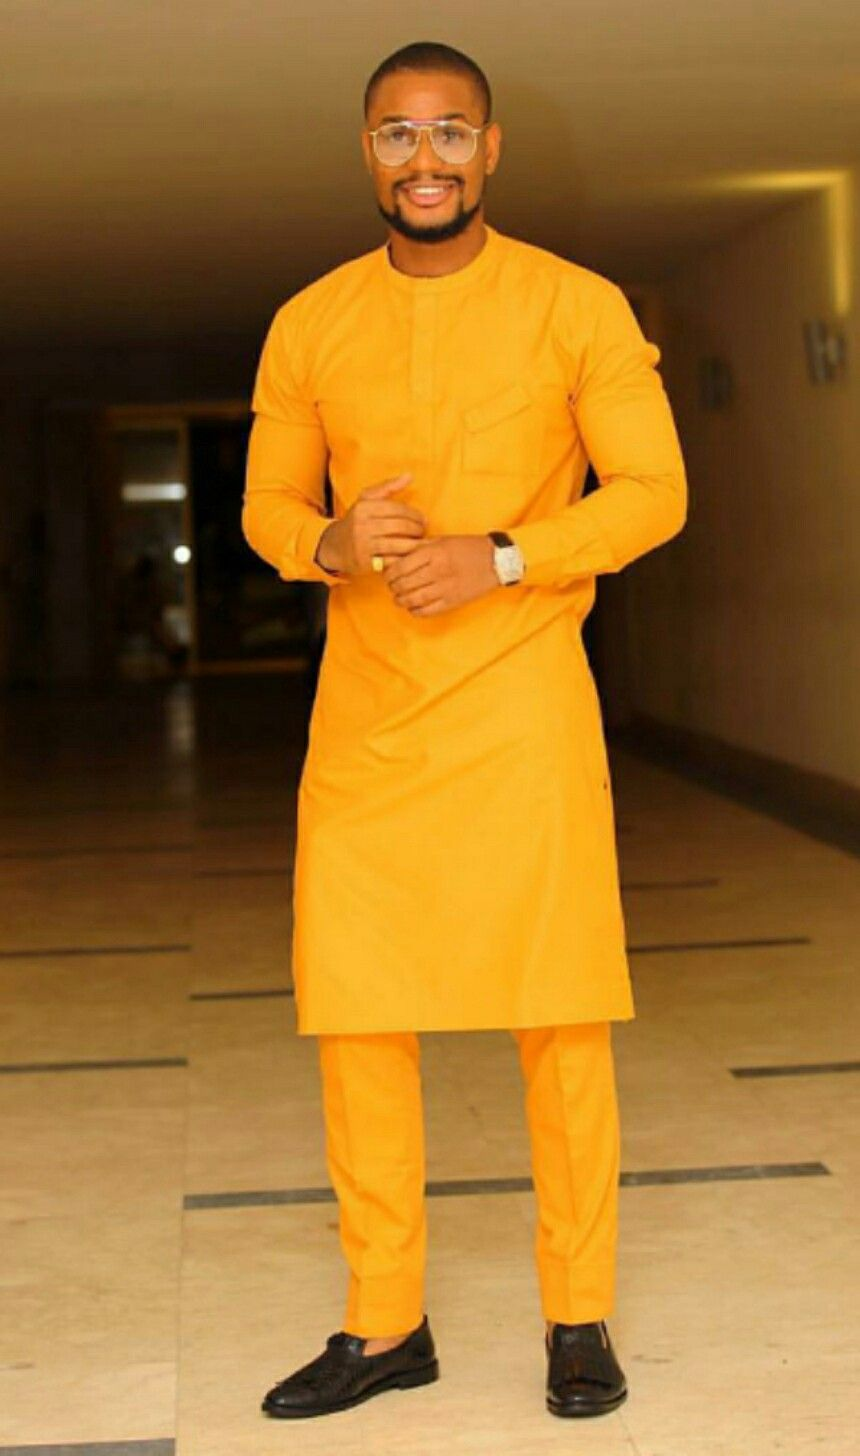 Mode Africaine Homme, Tenue Africaine, Model Couture Africaine, Boubou Homme,  Hommes Africains